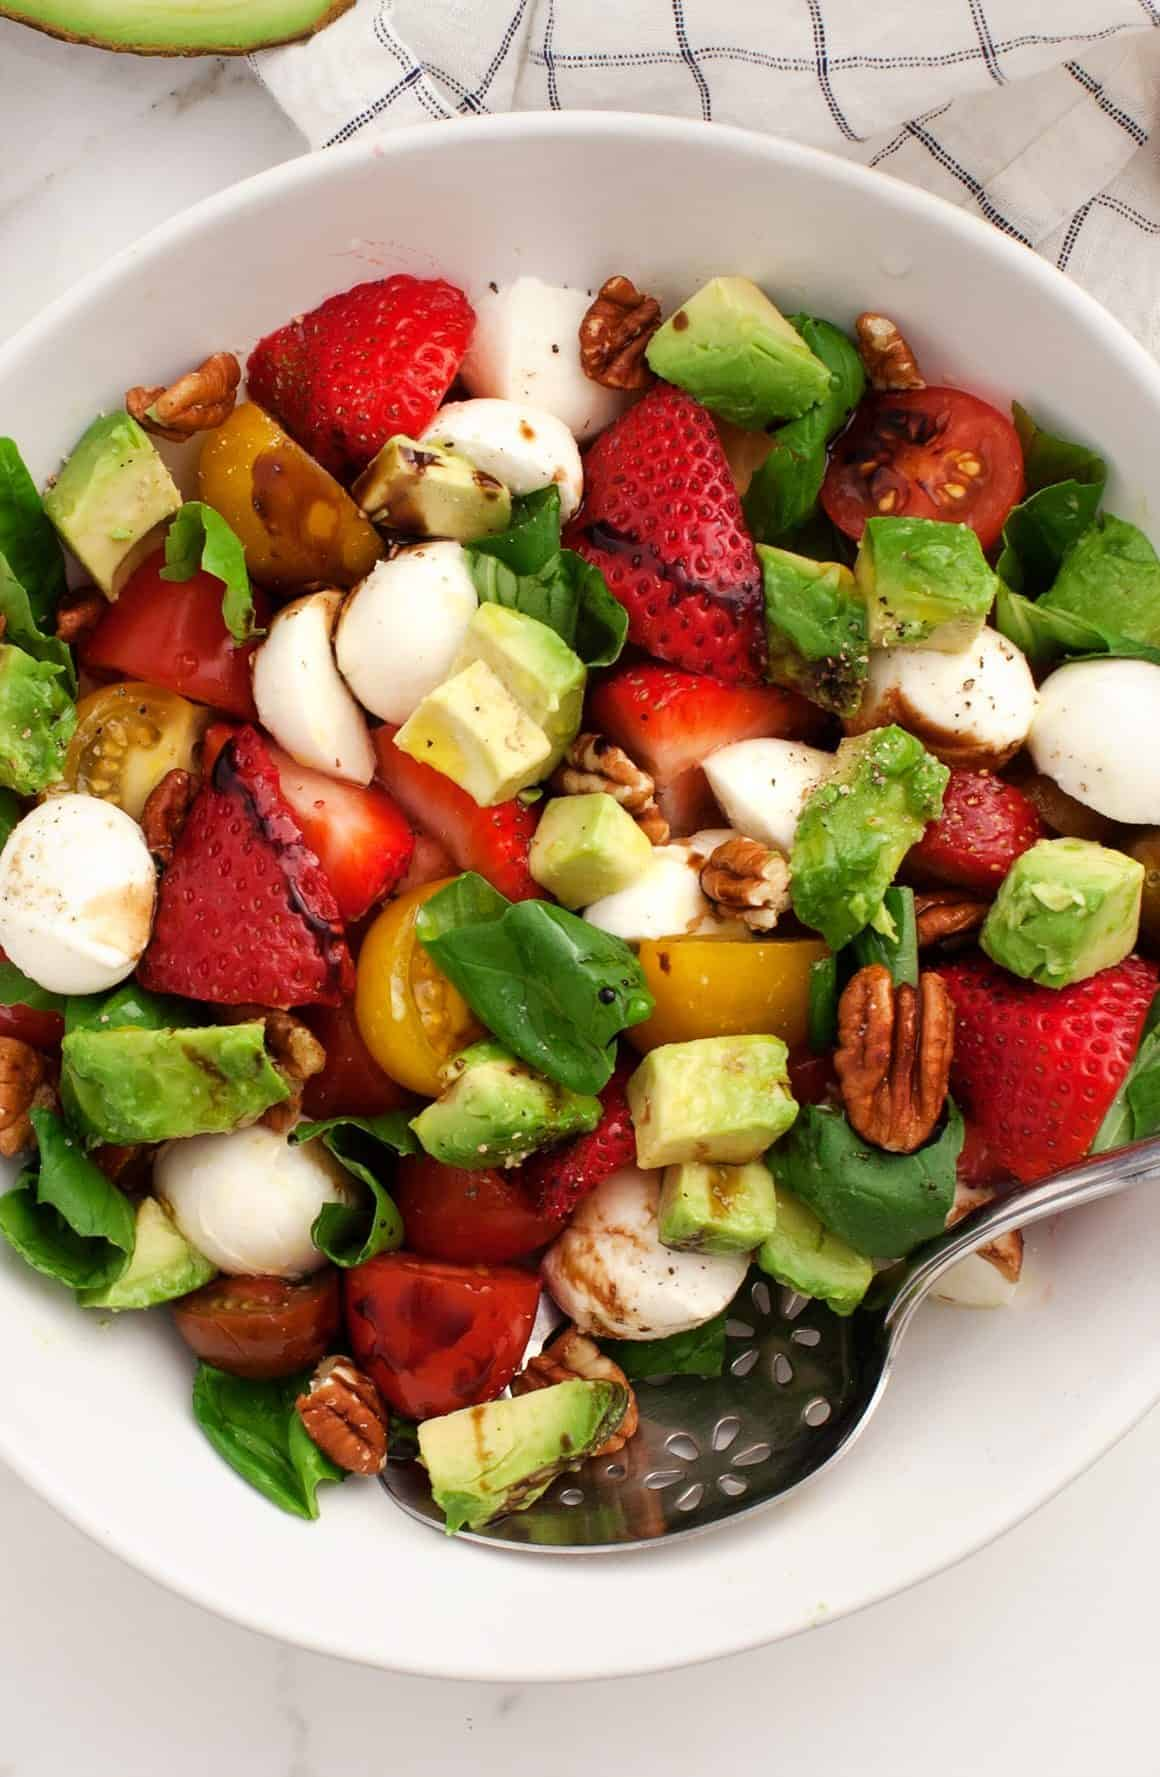 Strawberry Salad with Balsamic and Basil